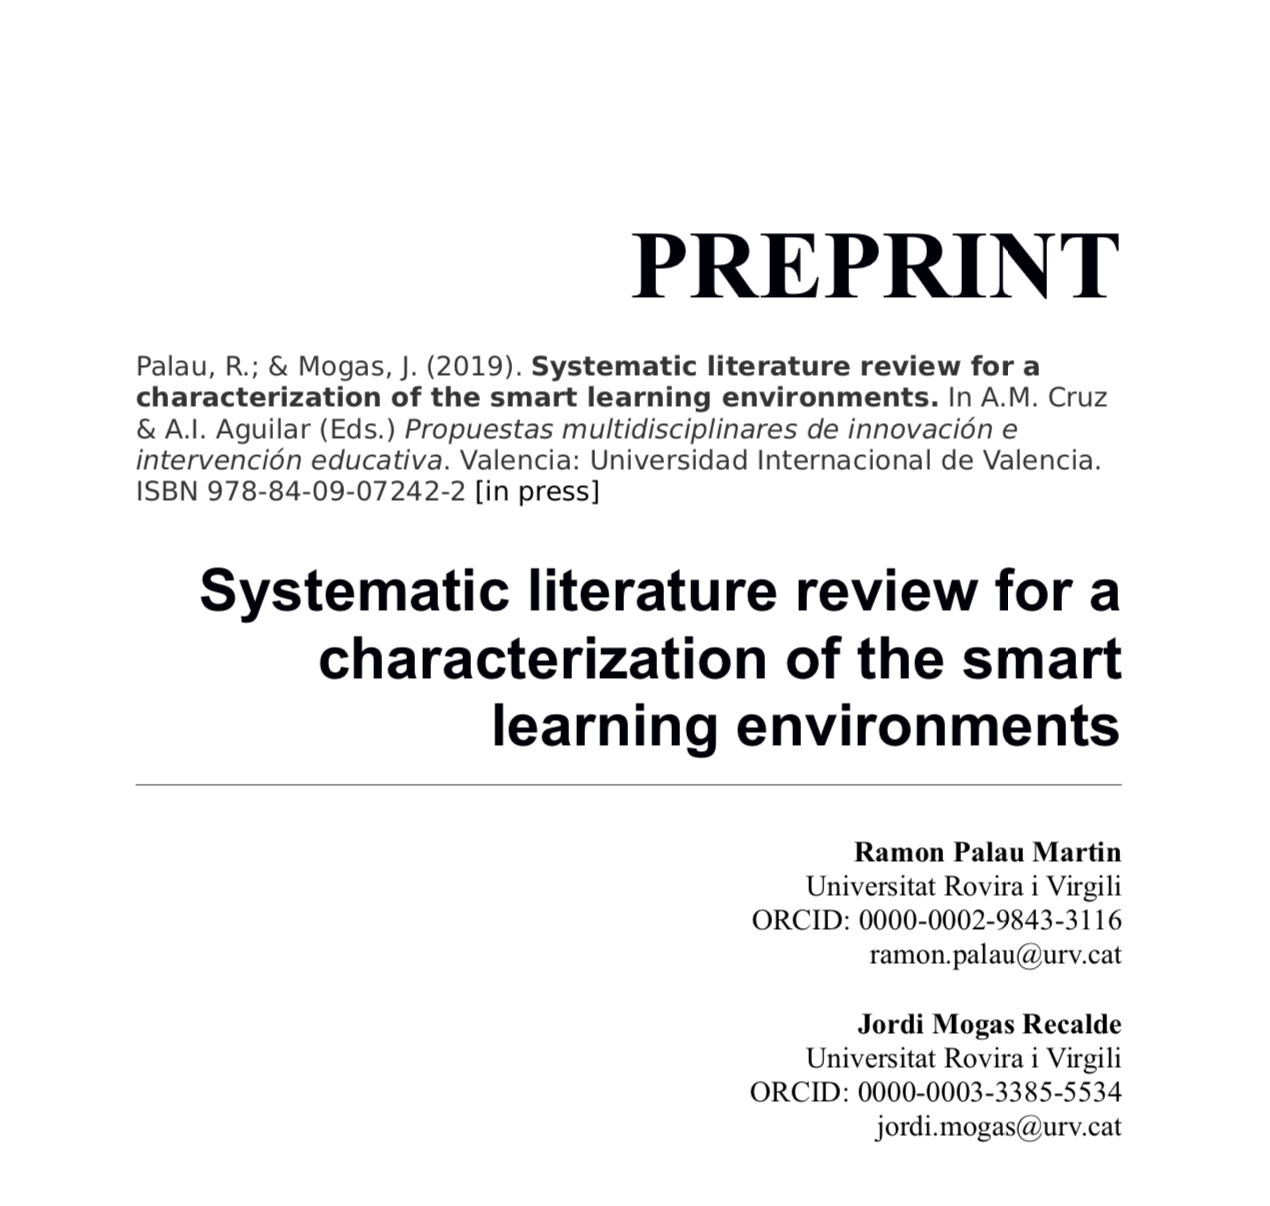 Systematic literature review for a characterization of the smart learning environments